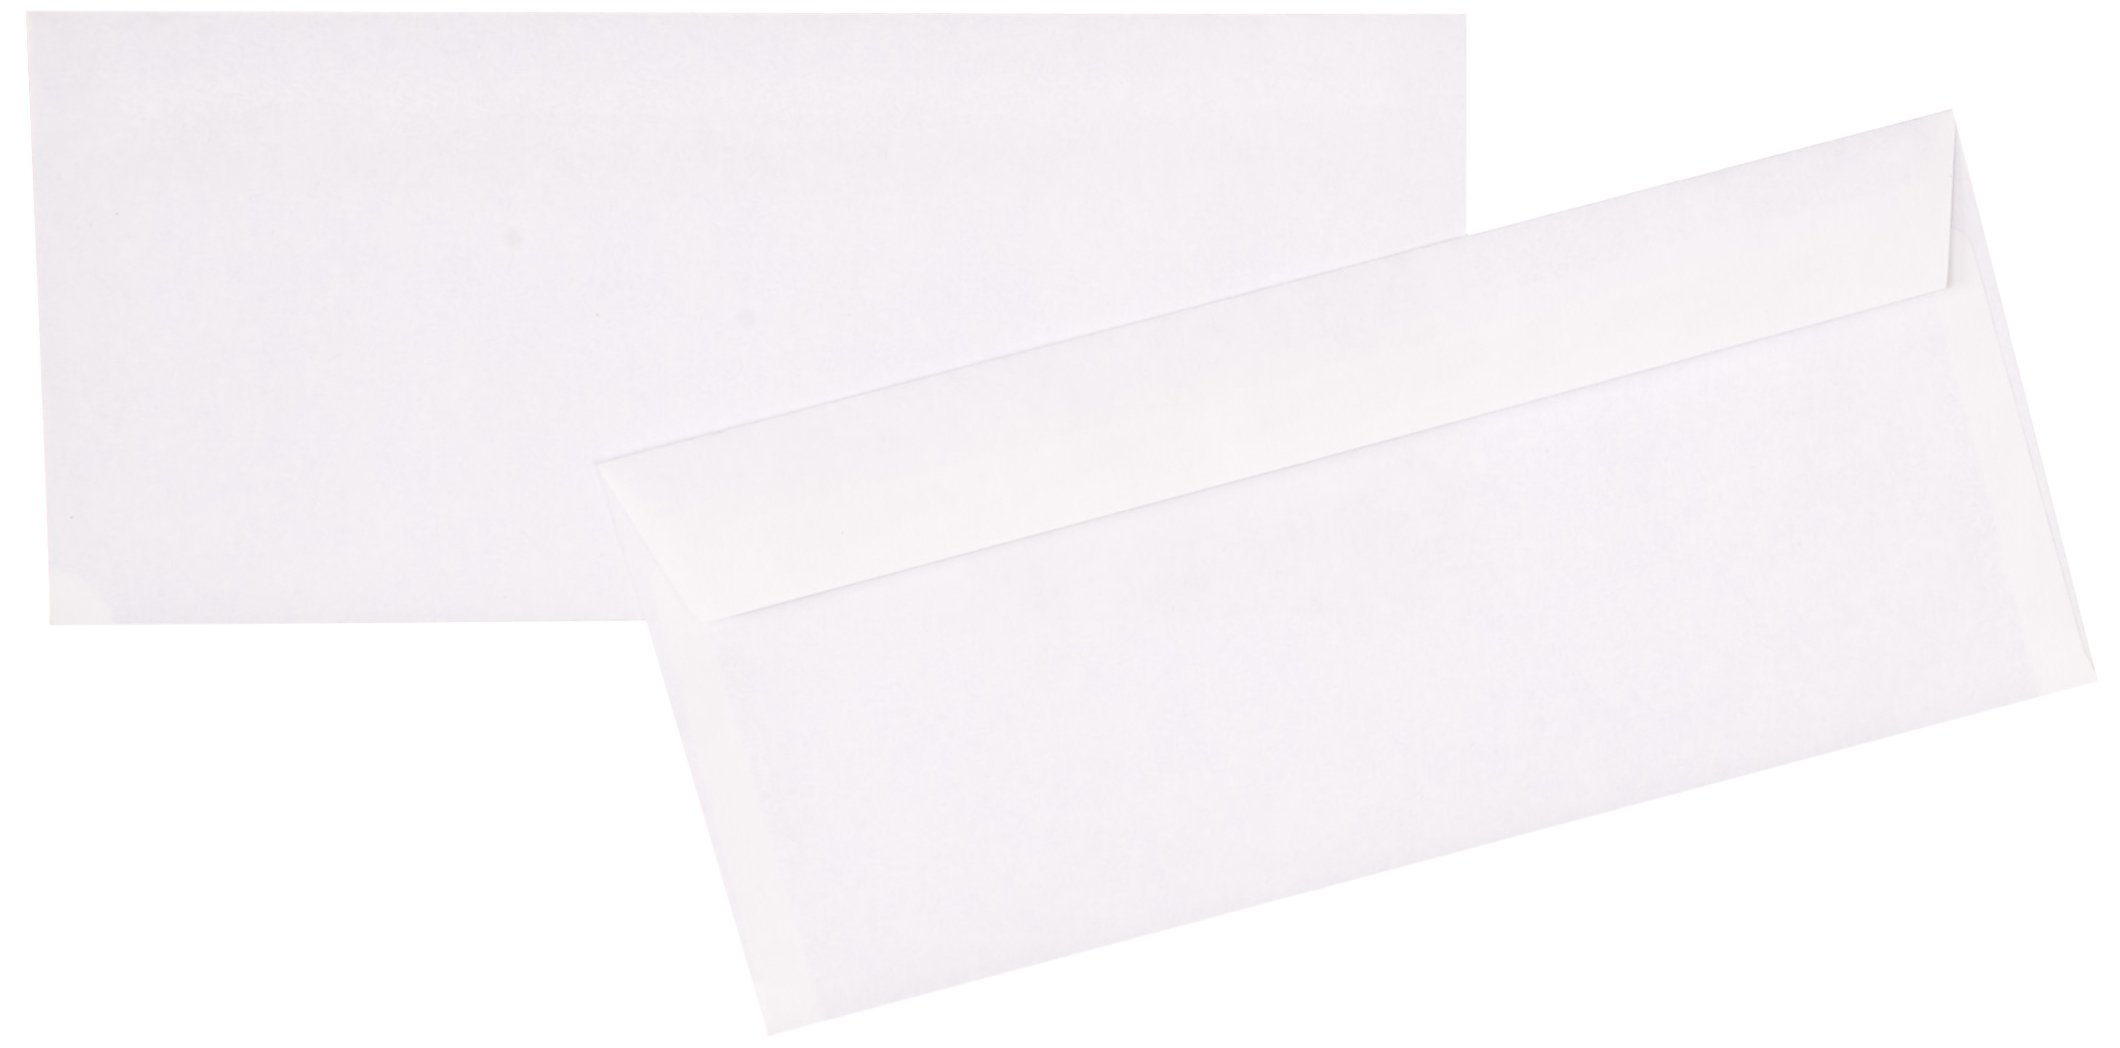 Columbian CO142 (#10) 4-1/8x9-1/2-Inch Grip-Seal Security Tinted White Envelopes, 45 Count